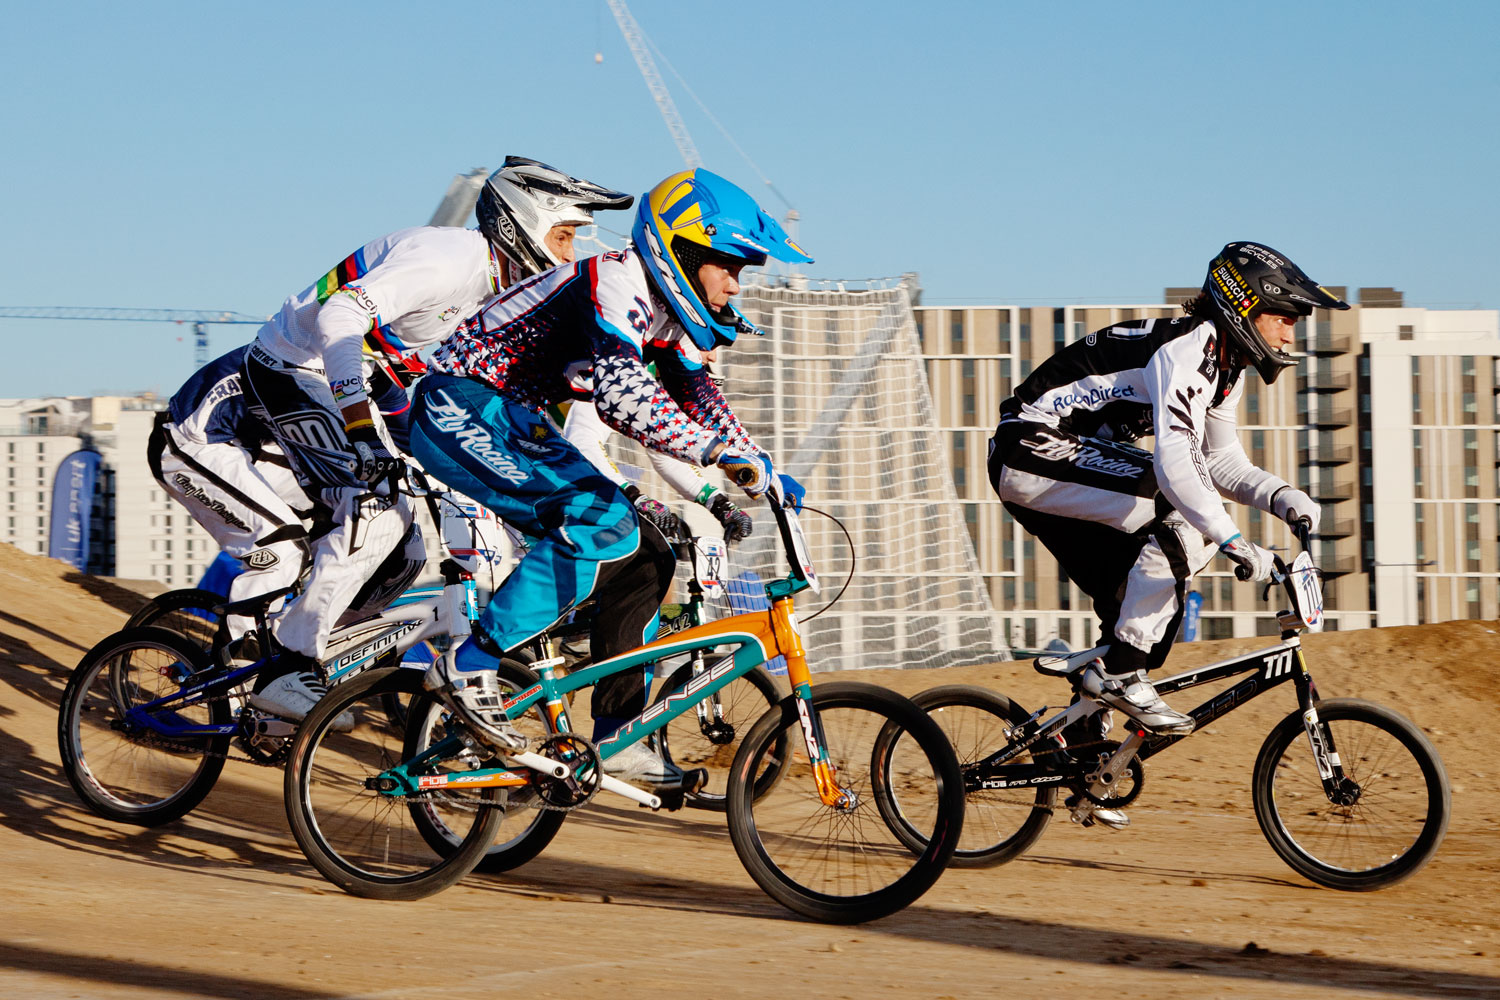 BMX UCI Supercross, London 2012 test event